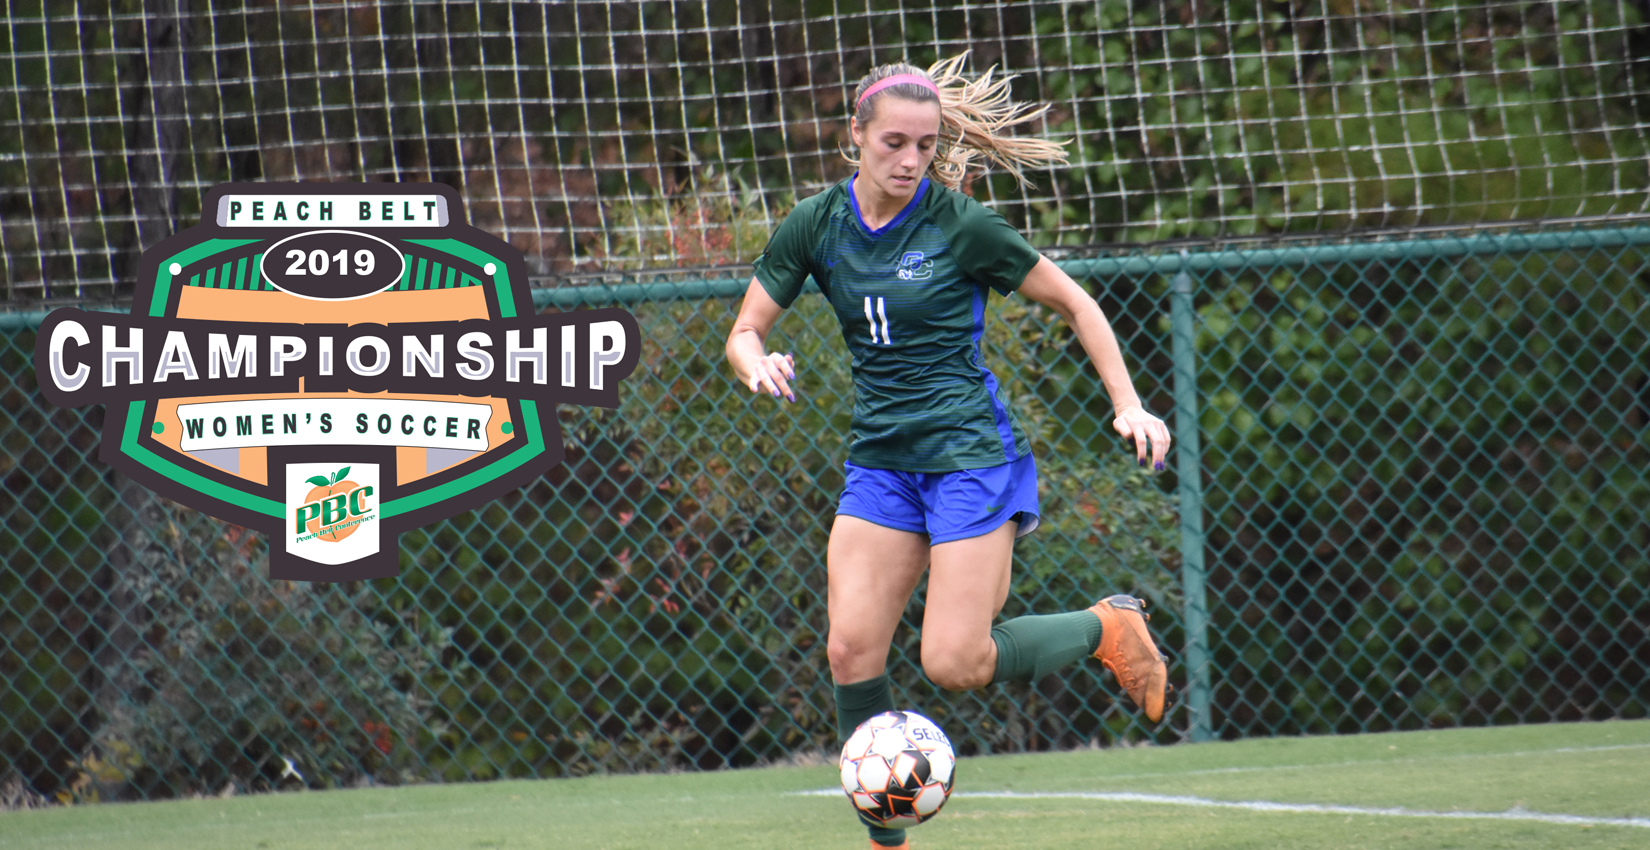 Erin Ferris Named to PBC All-Tournament Team